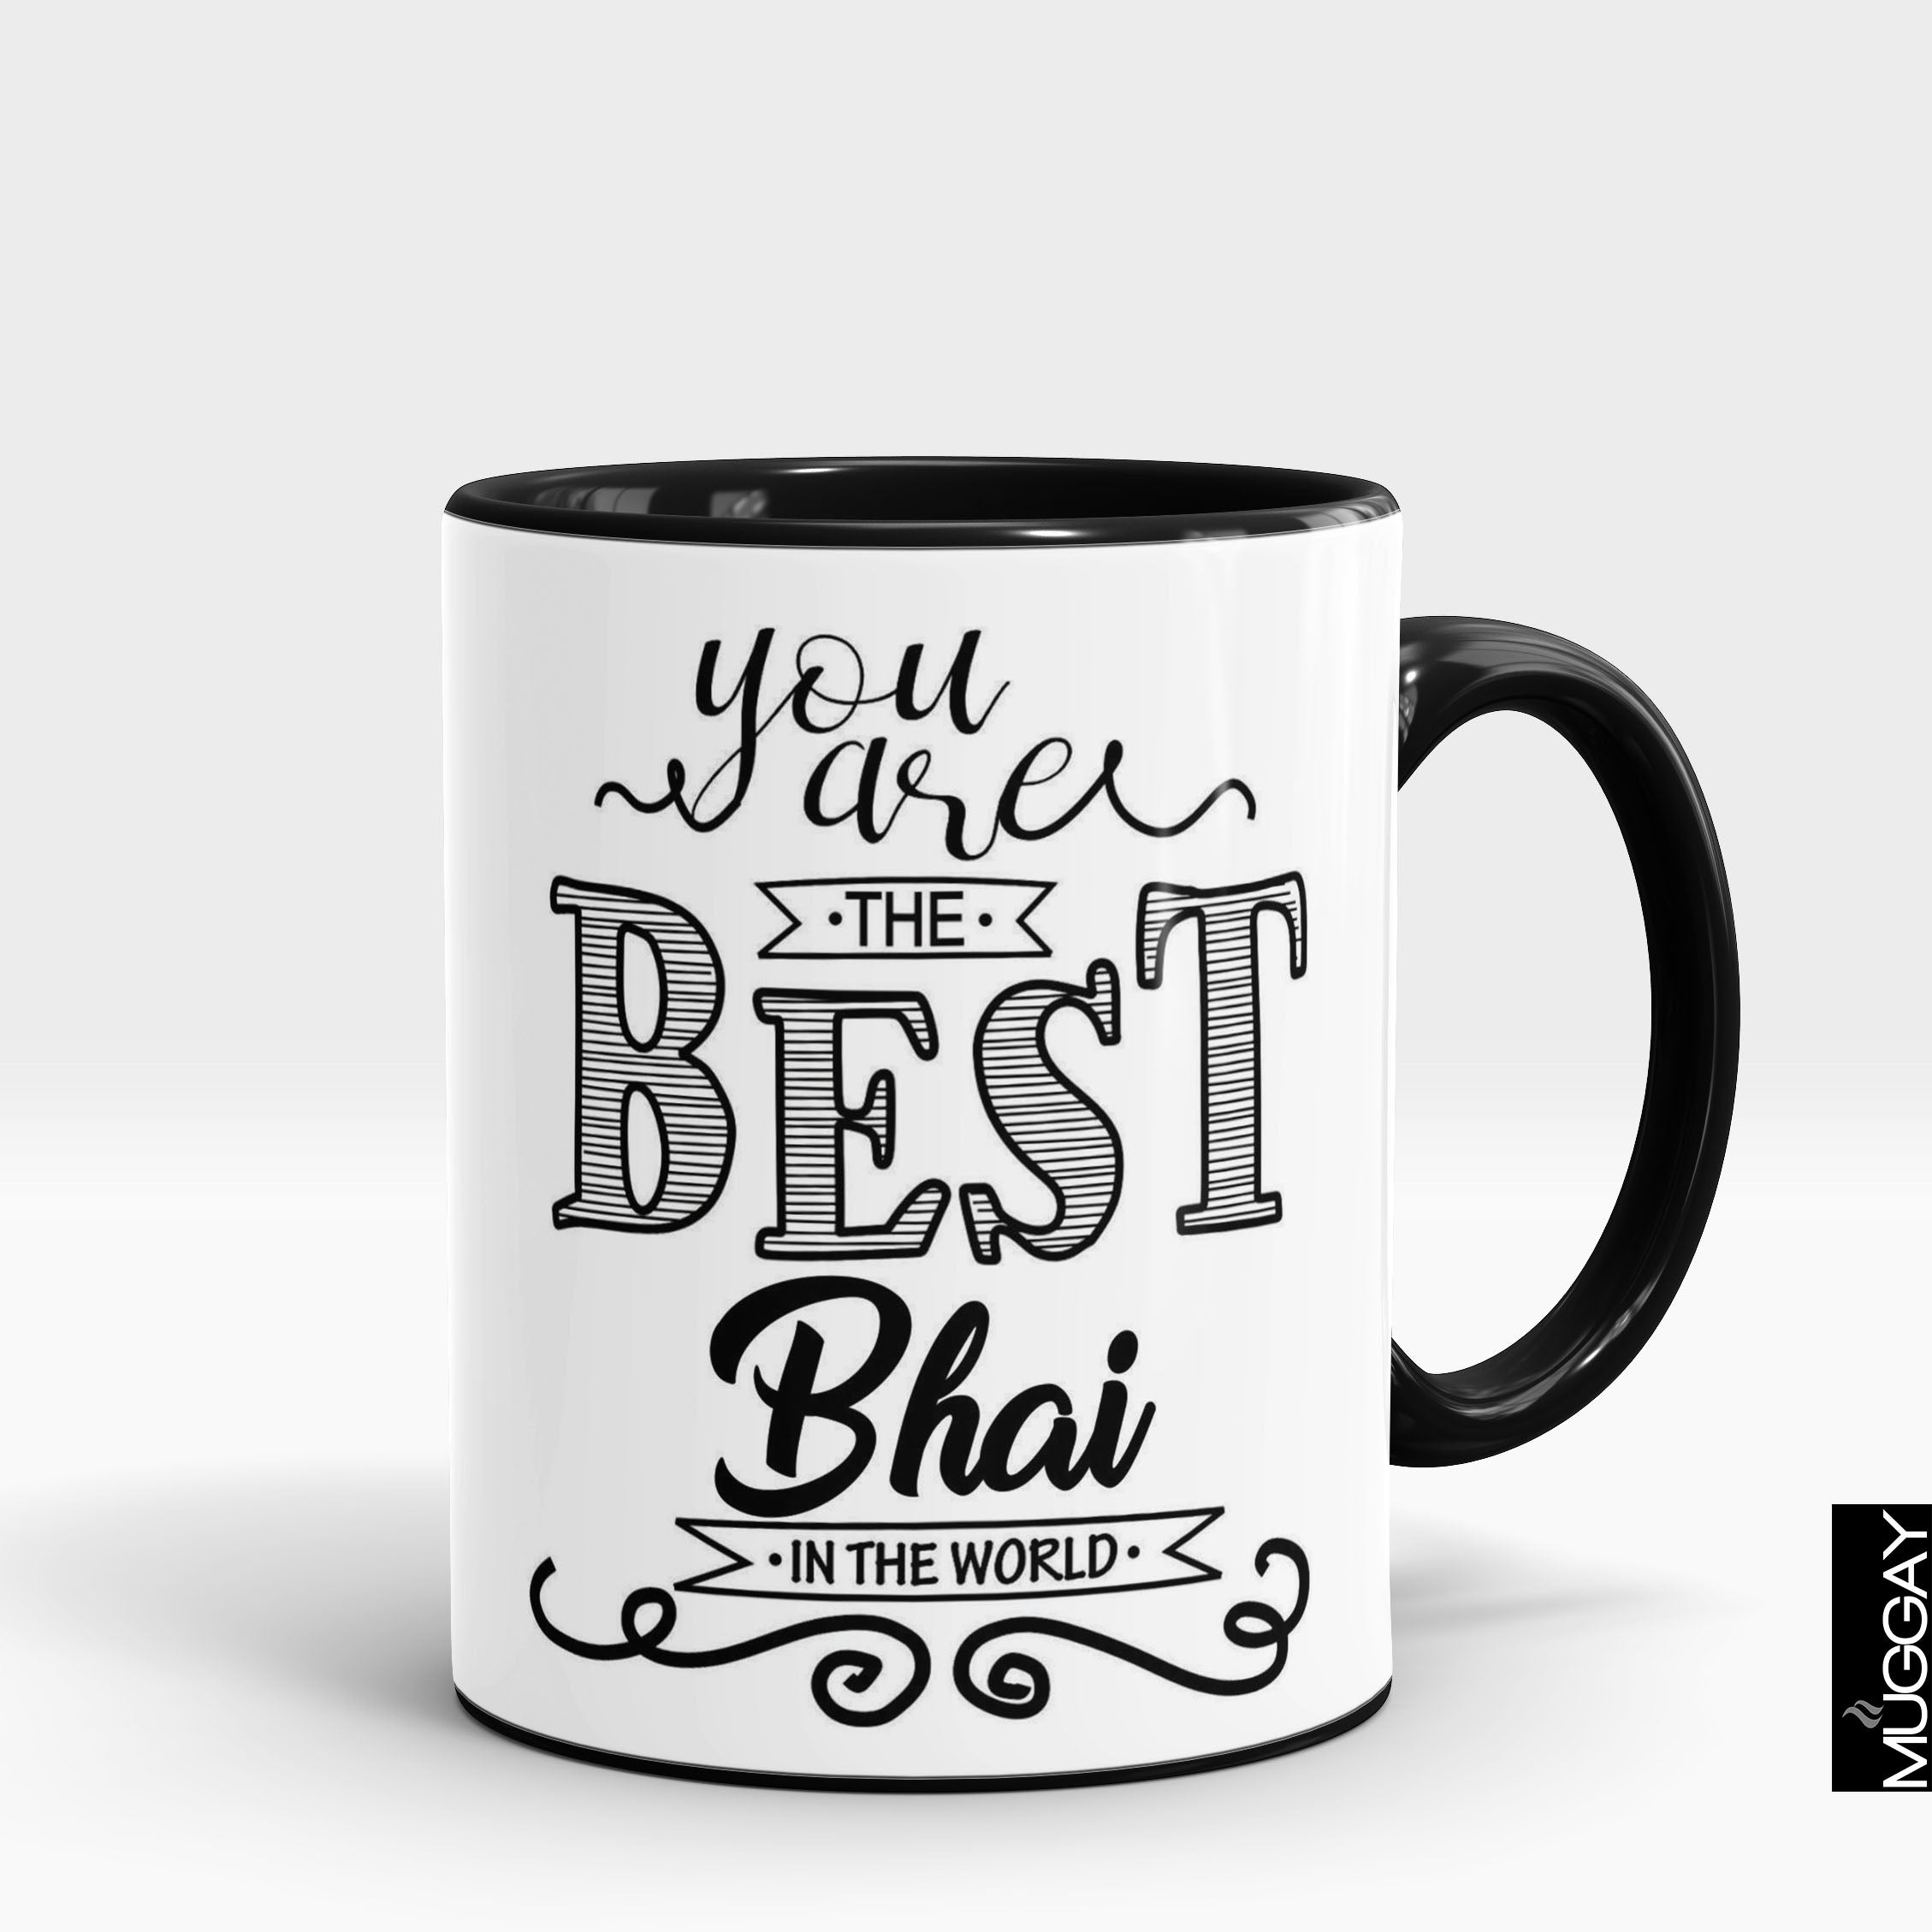 Bro7 - Muggay.com - Mugs - Printing shop - truck Art mugs - Mug printing - Customized printing - Digital printing - Muggay